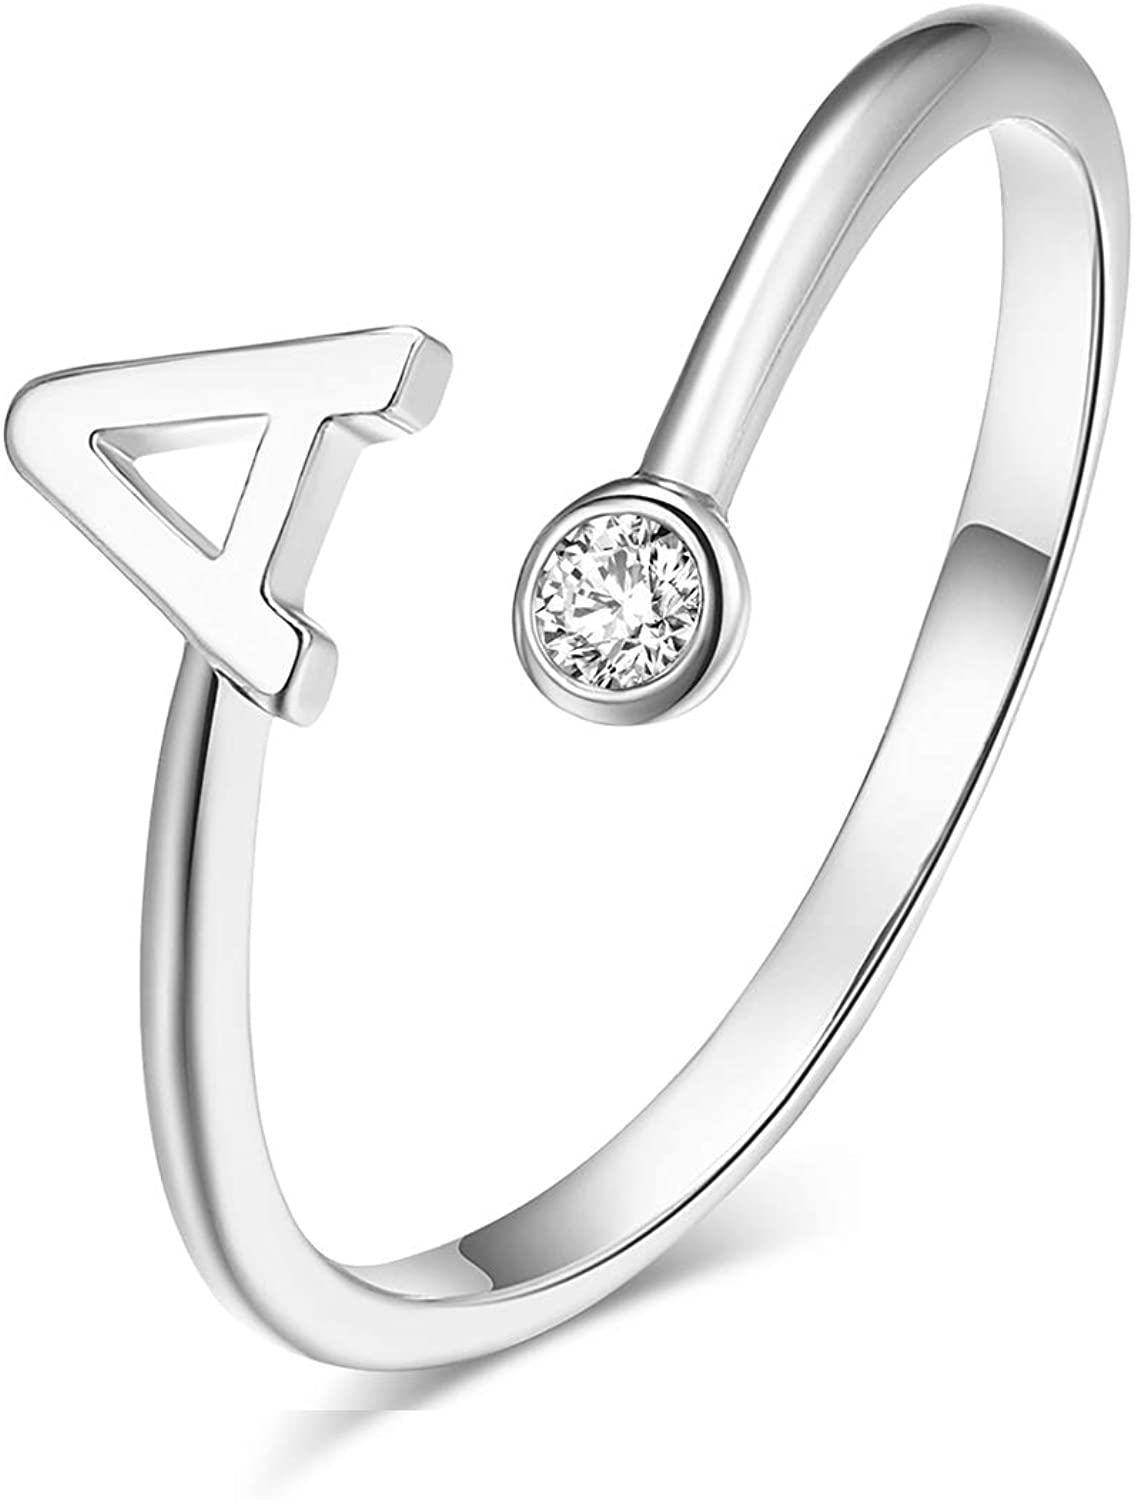 Silver Plated Initial 26 Alphabet Open Adjustable Mid Finger Ring Dainty Inlaid Crystal Jewelry